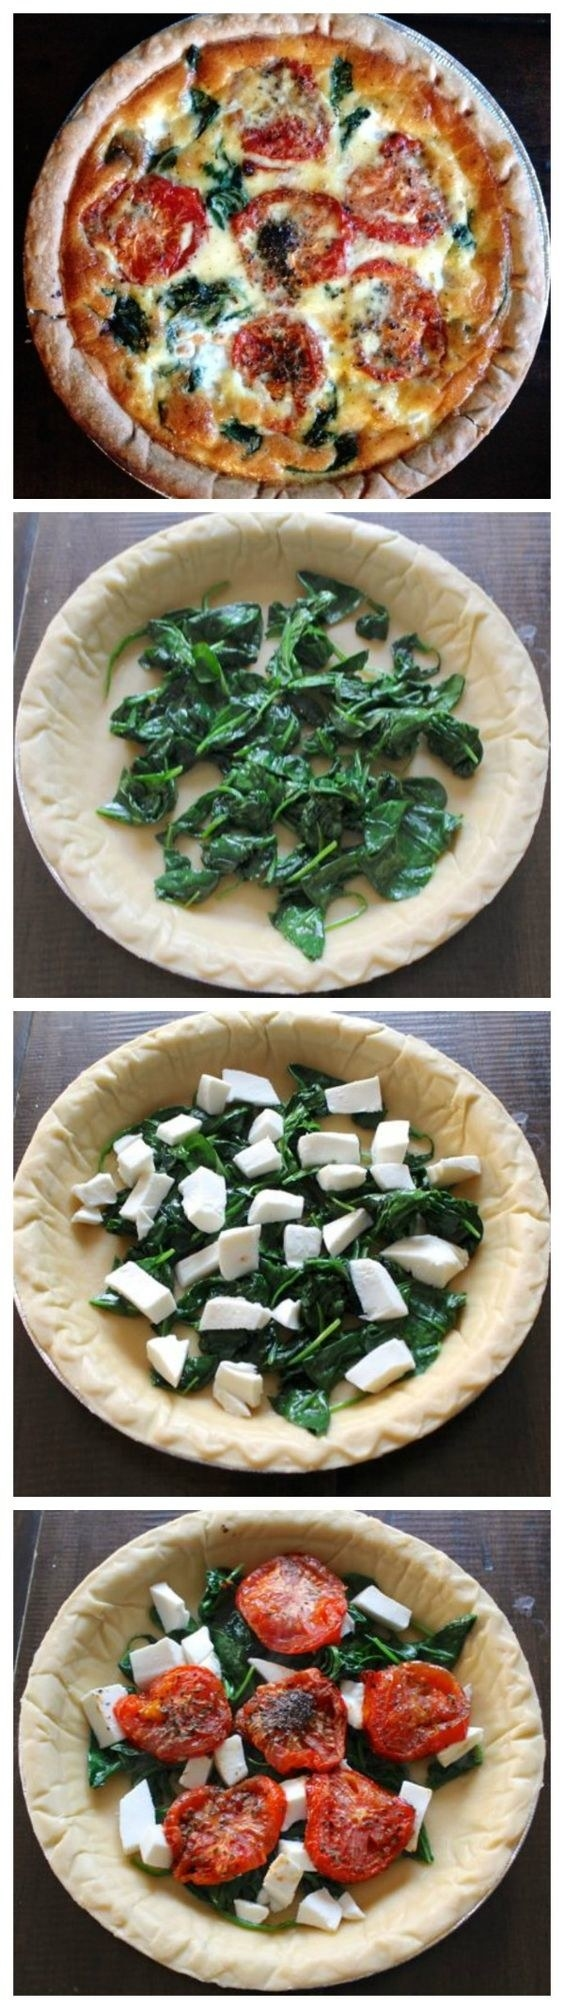 This comes together super quickly thanks to premade pie crust. Get the recipe.